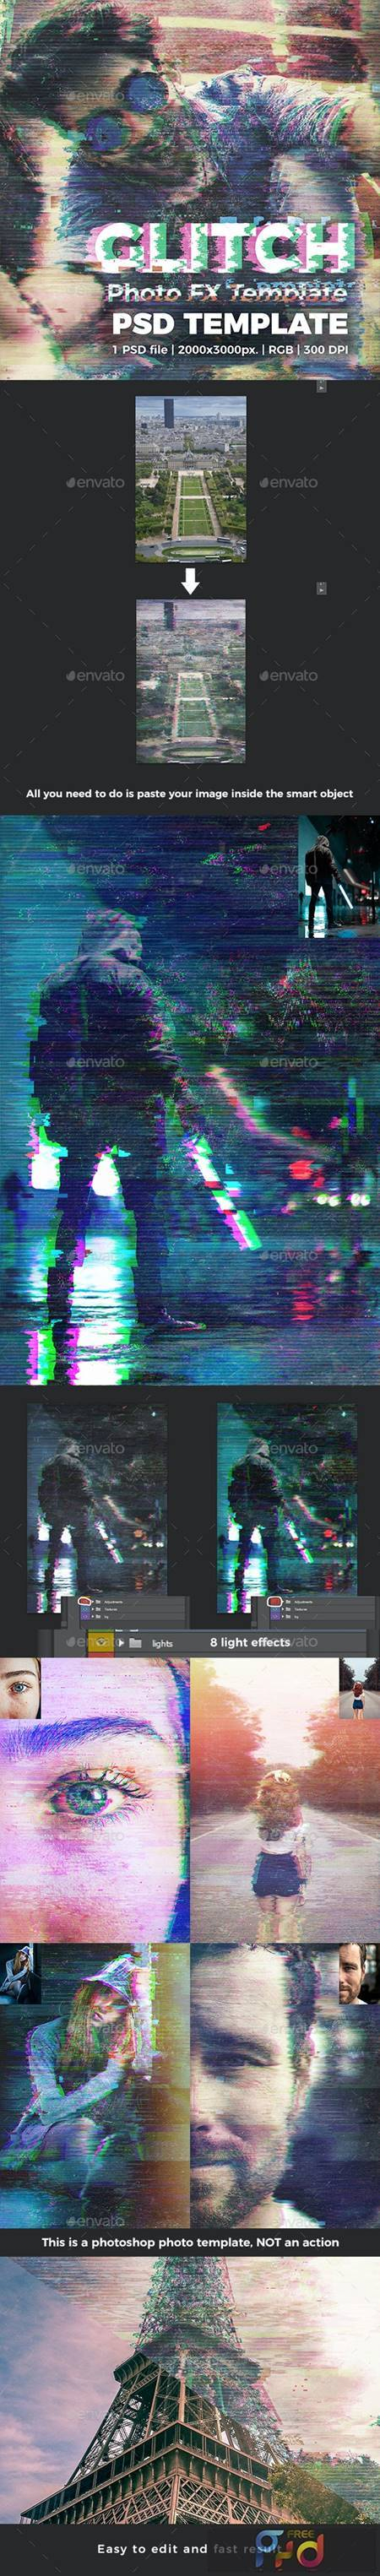 Glitch Photo FX Template 27055358 1